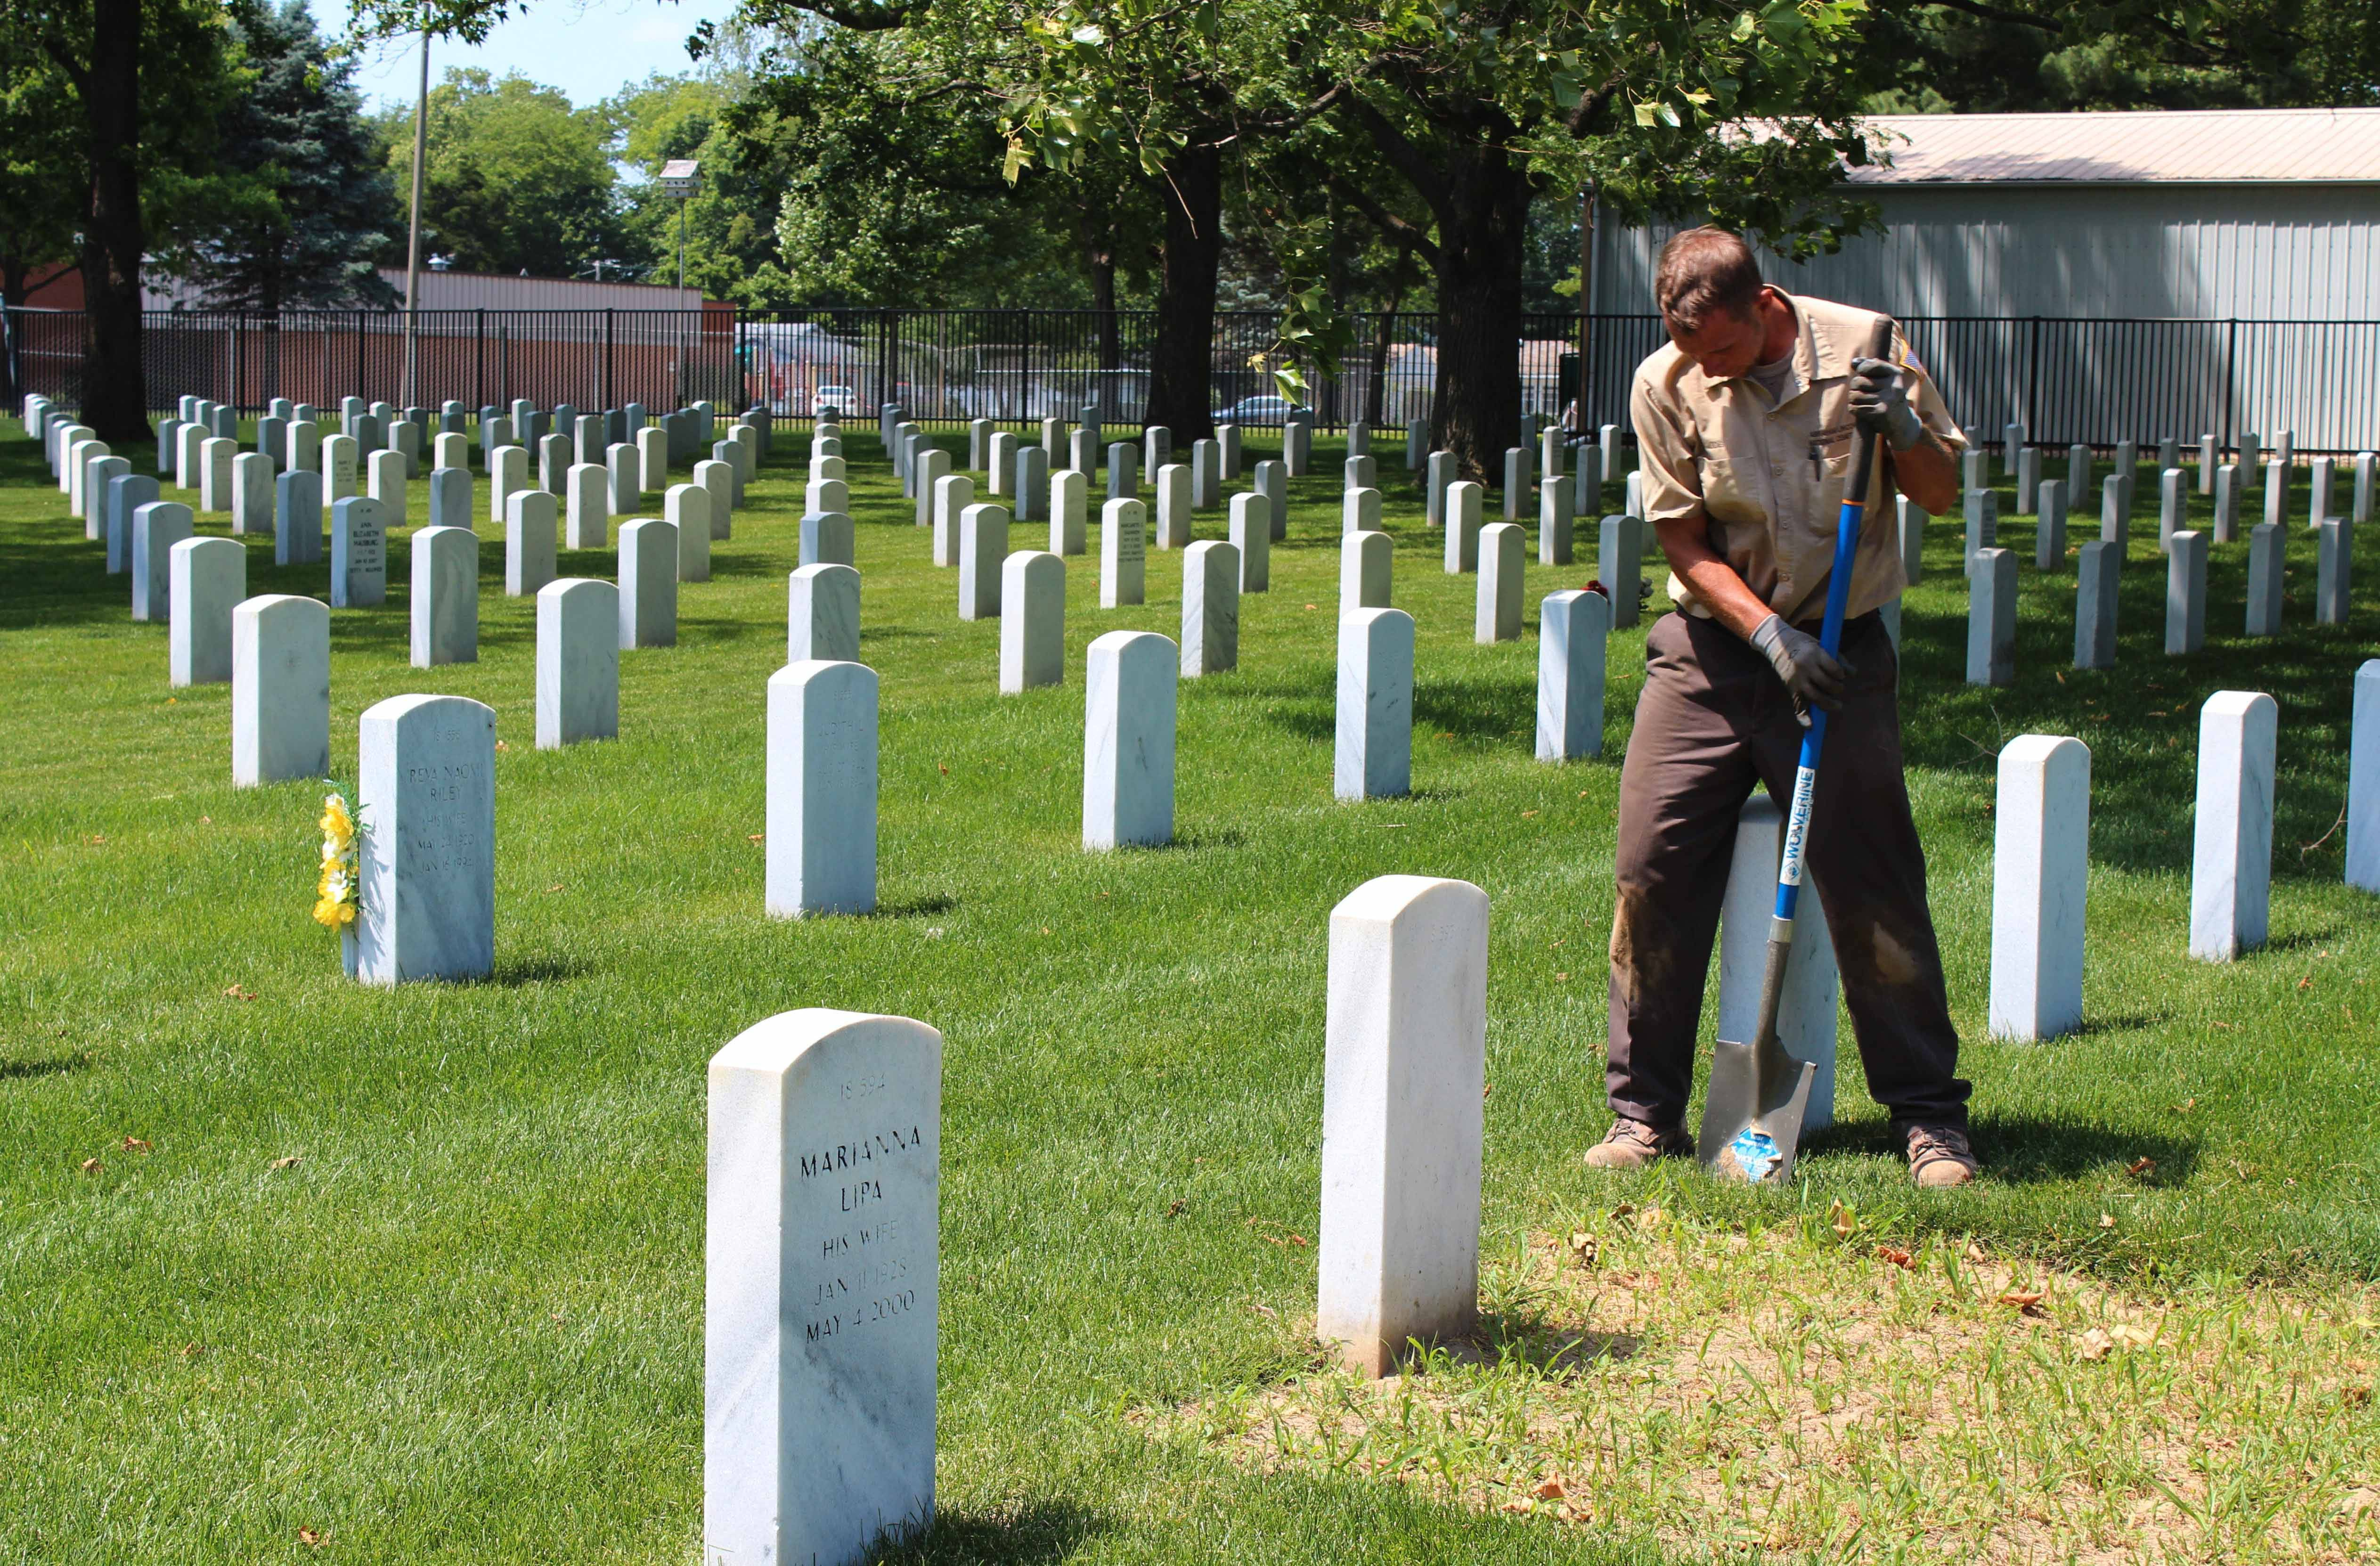 Joe Curran works on sod Tuesday in the Danville National Cemetery in Danville, Ill. Curran was transferred temporarily this week from Abraham Lincoln National Cemetery near Joliet to help the Danville cemetery, which has had staff reductions.